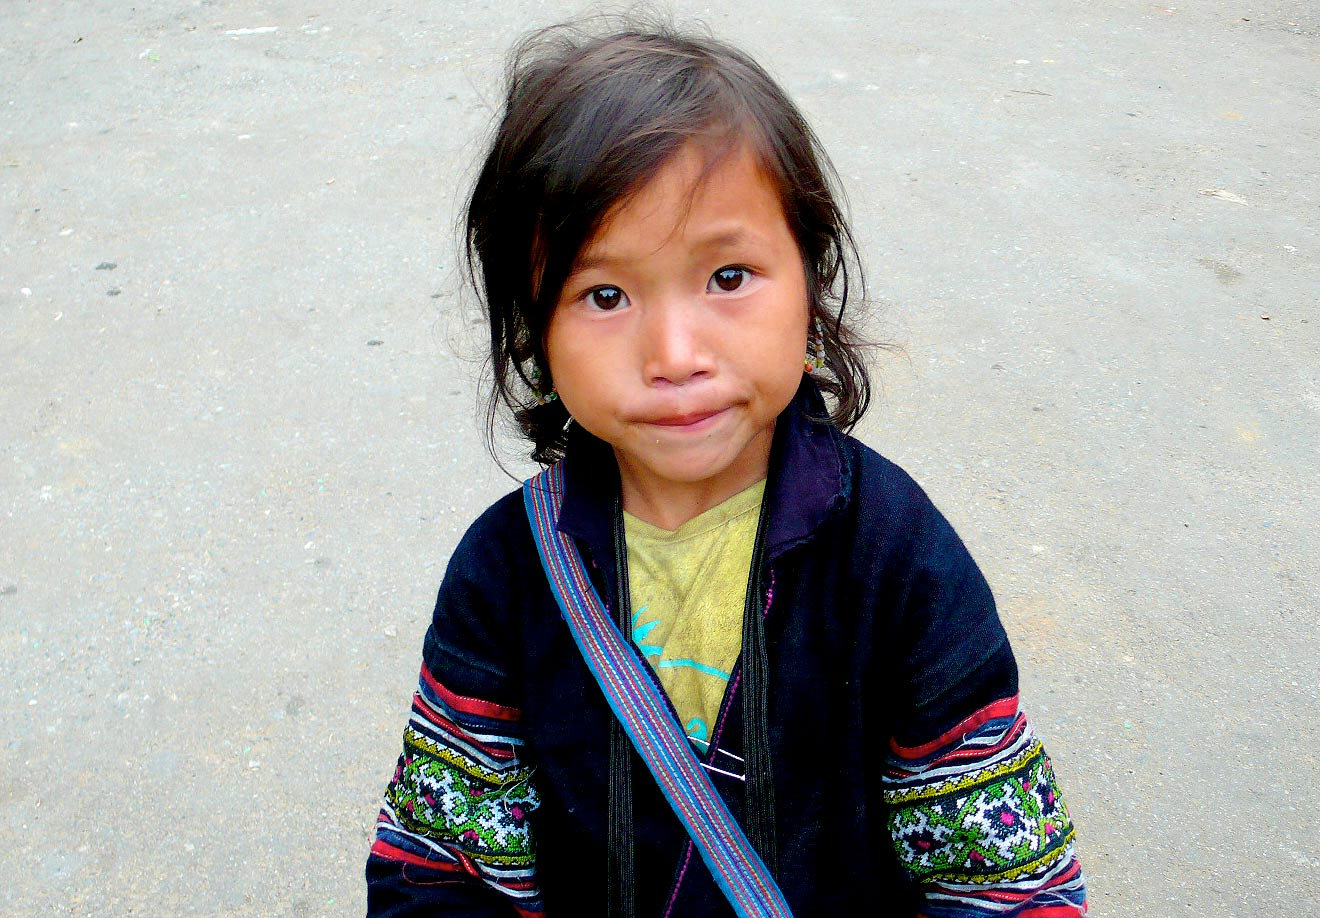 A young girl in northern Vietnam. Ethnic minorities account for 13 percent of Vietnam's population, but 44.4 percent of the country's poor